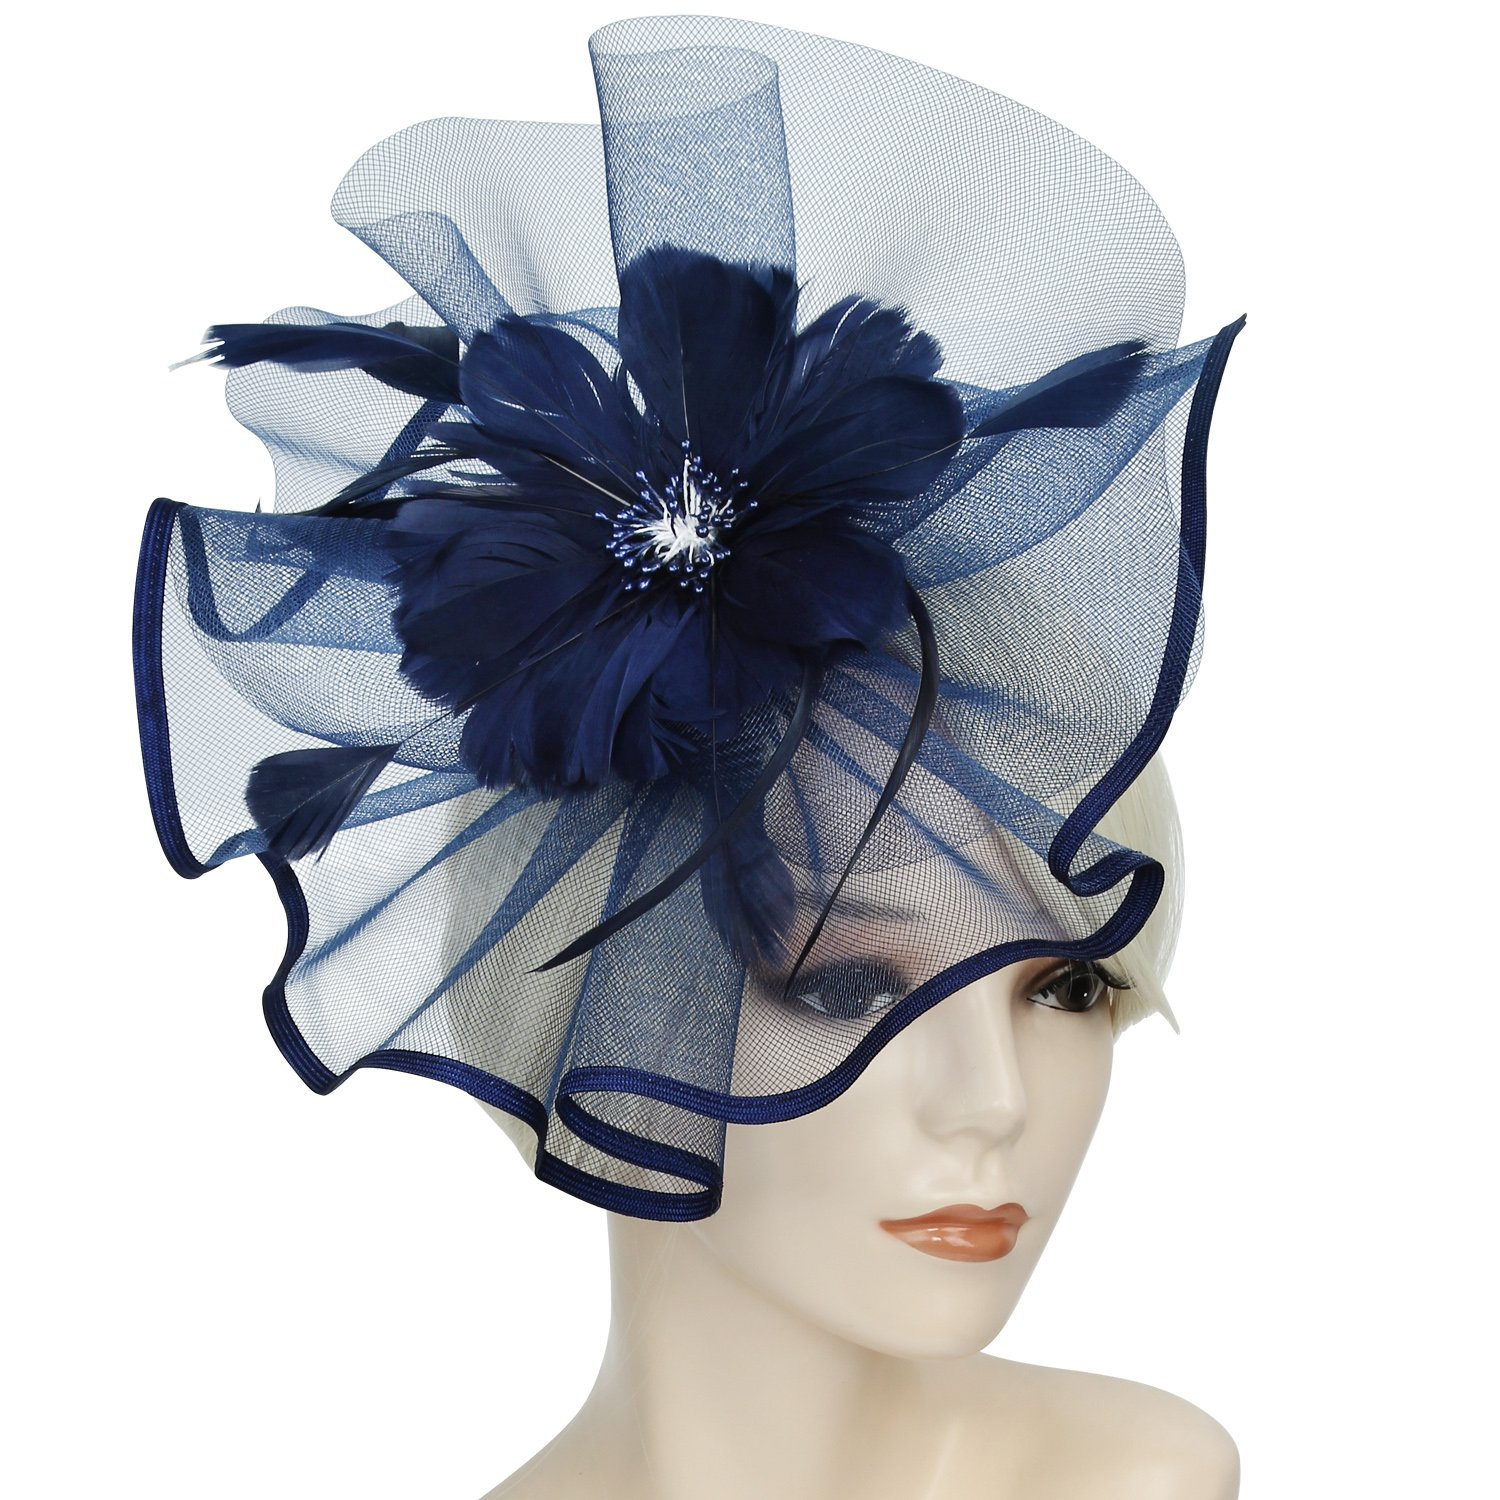 Acecharming Fascinators for Women, Feather Sinamay Fascinators with Headbands Tea Party Pillbox Hat Flower Derby Hats(Large Size Navy Blue)